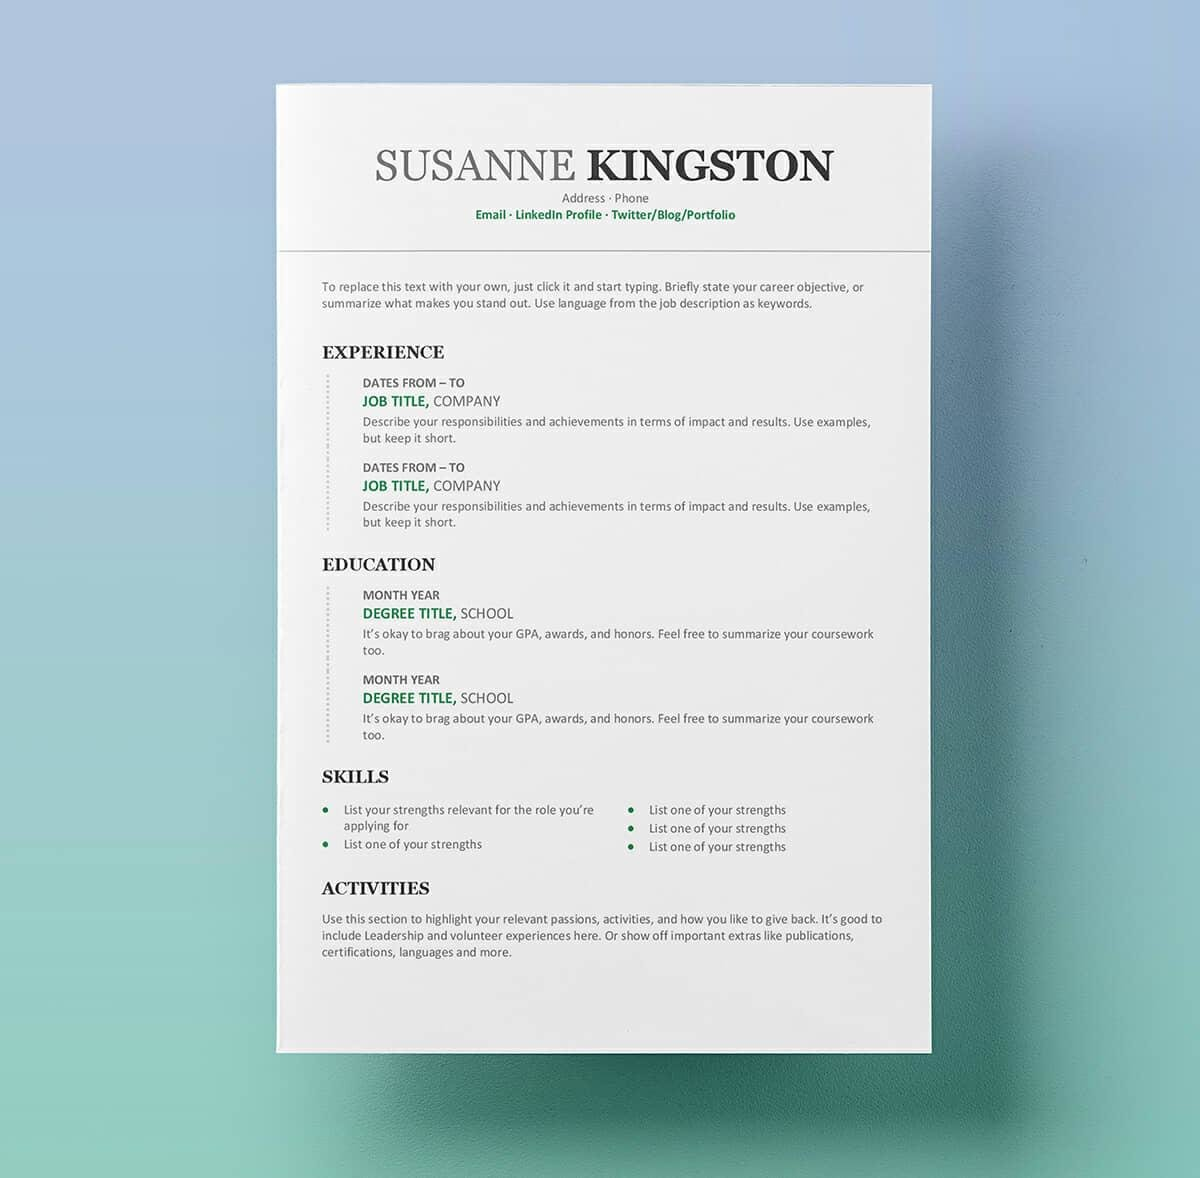 Attractive Microsoft Word Resume With Green Details